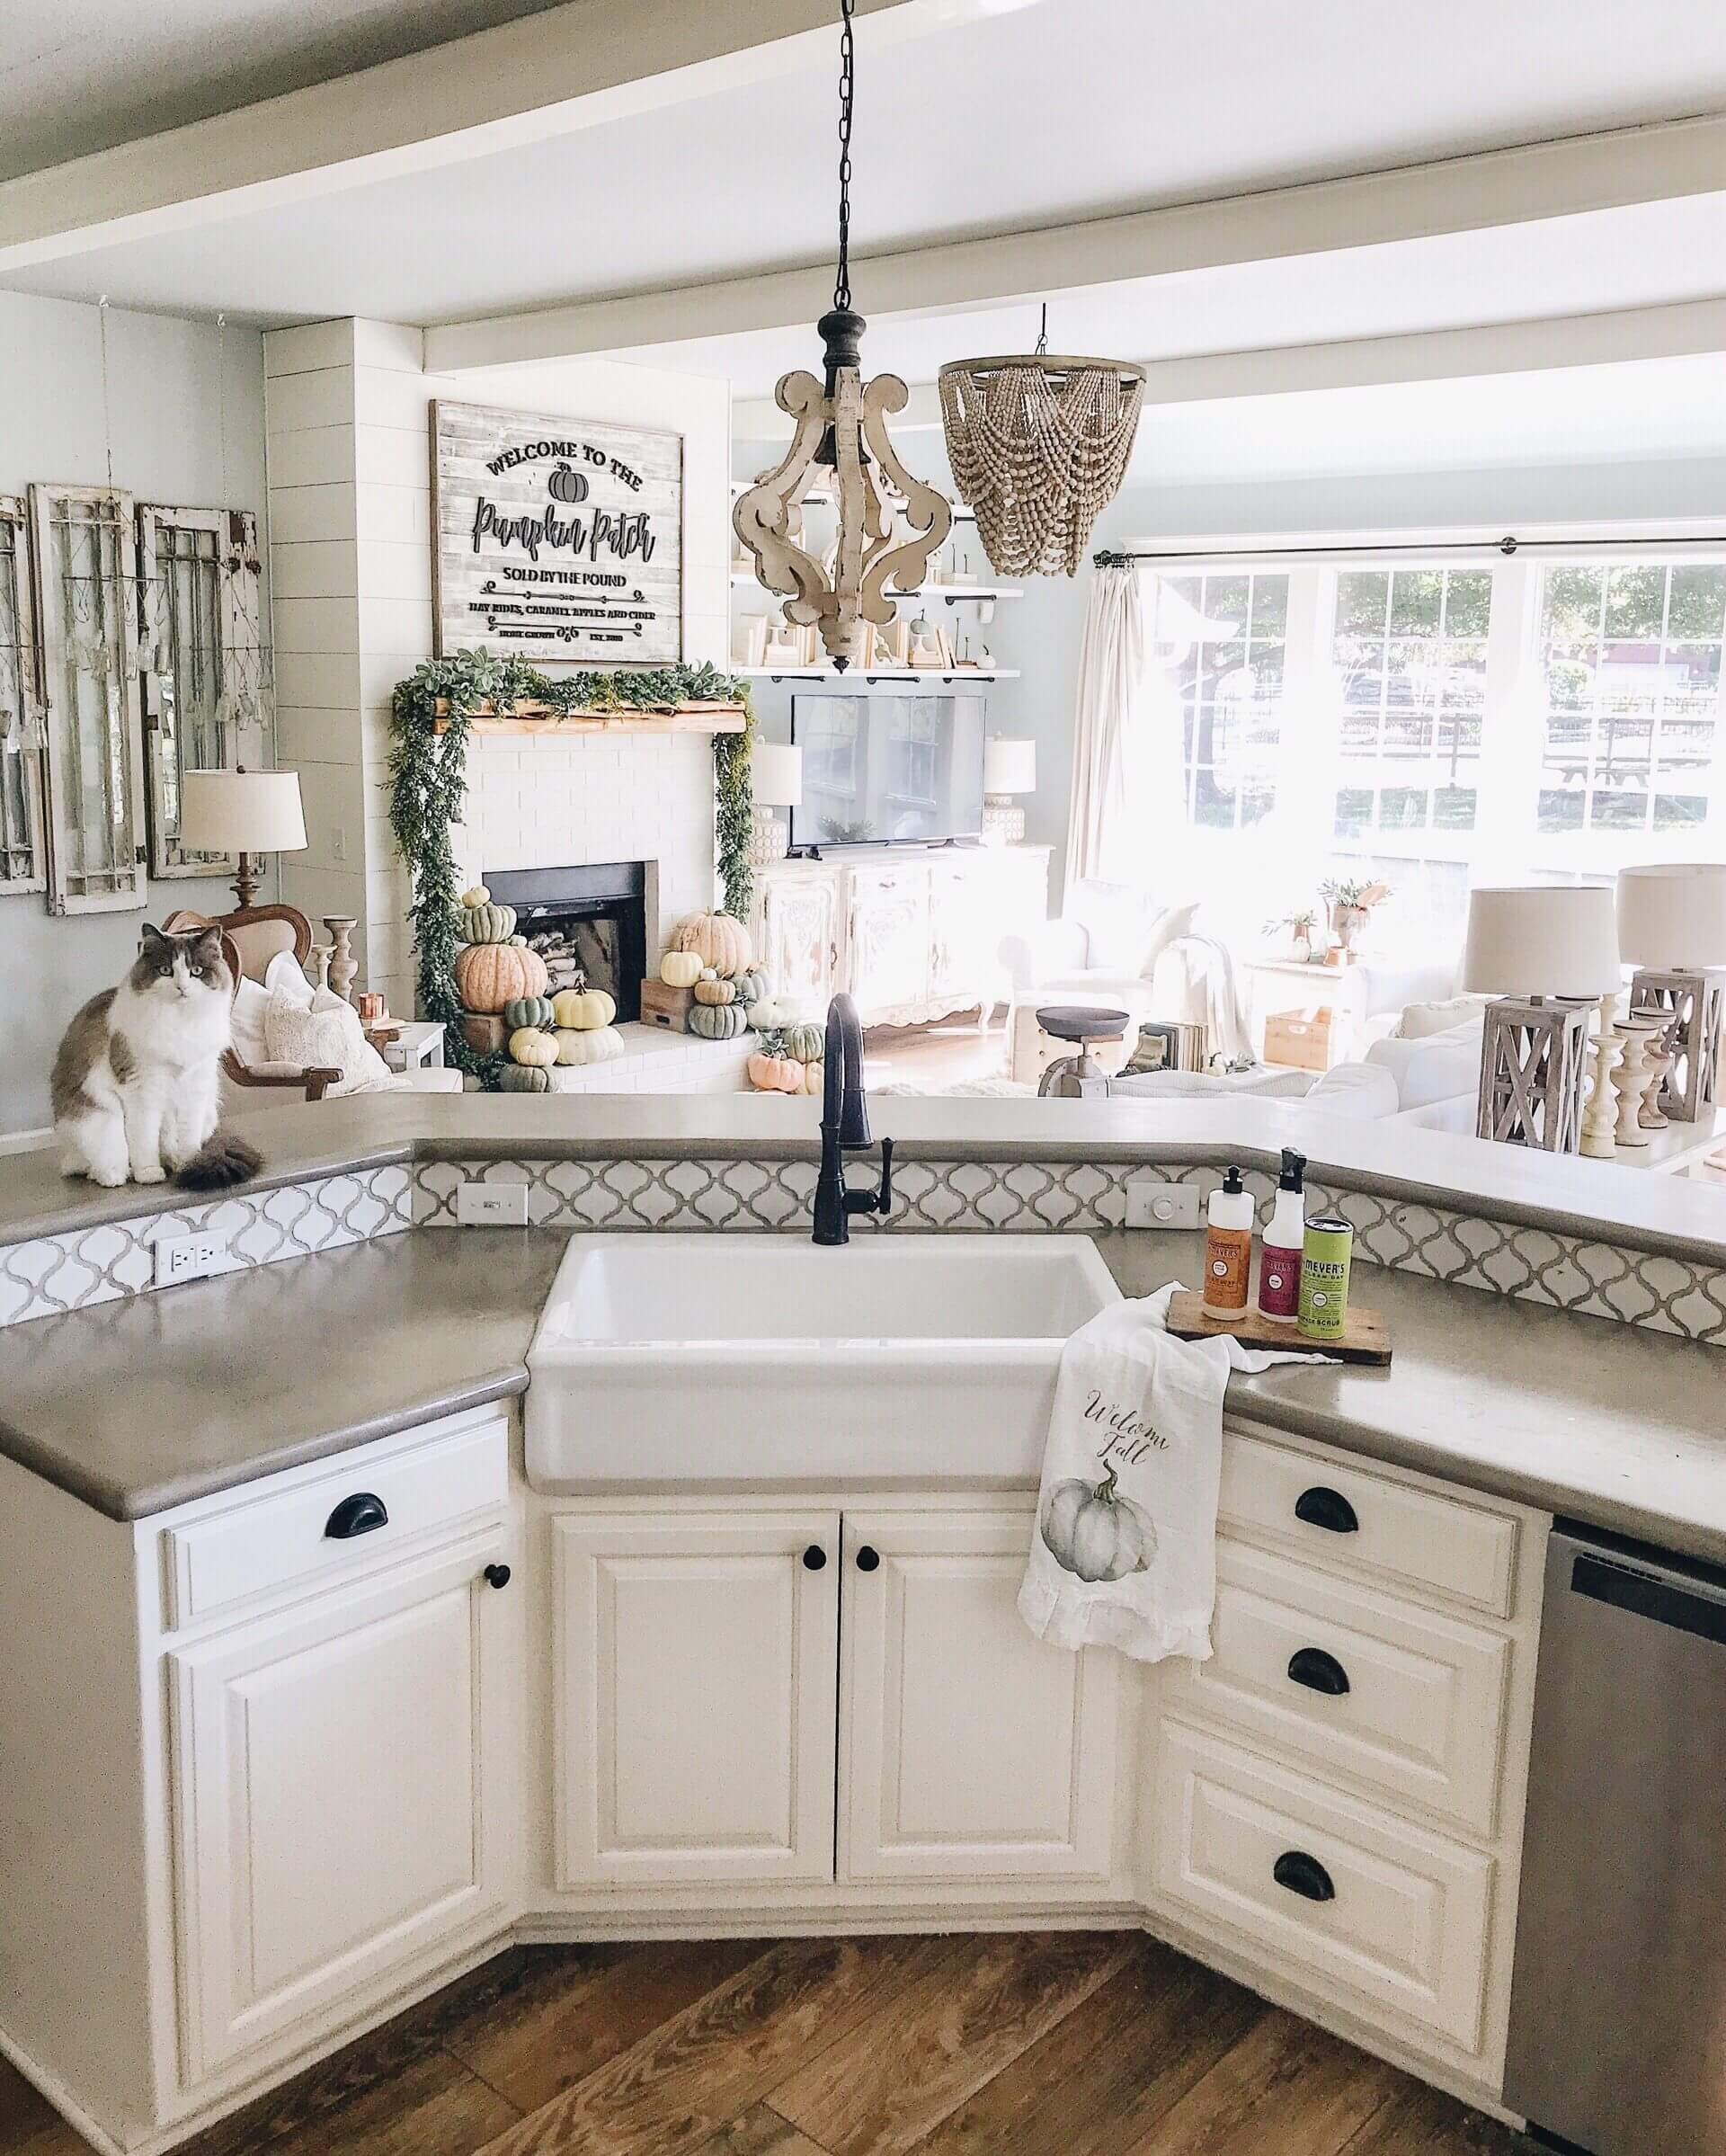 farm kitchen sink cabinets ct 26 farmhouse ideas and designs for 2019 in the island corner